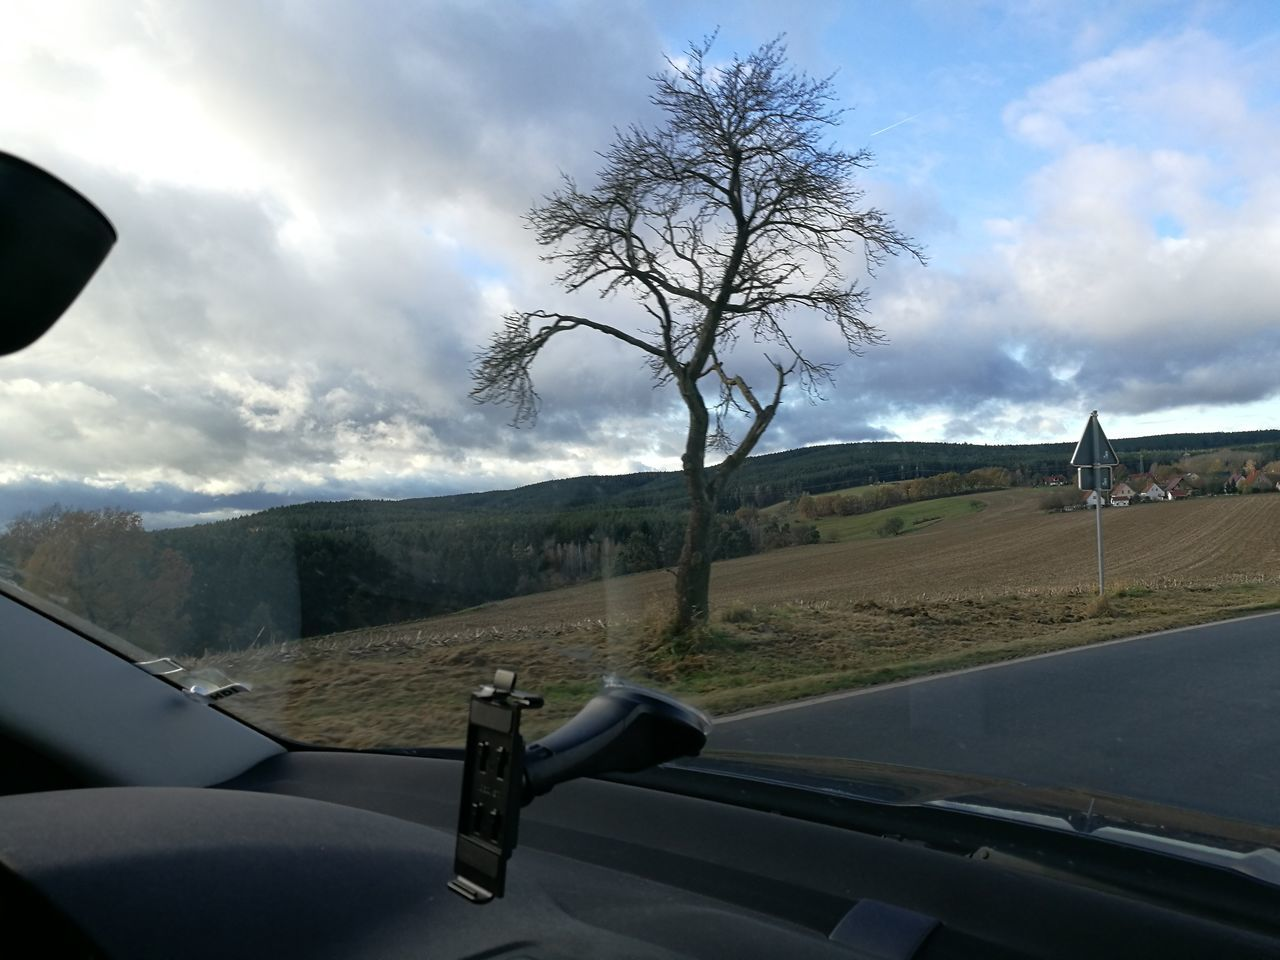 transportation, land vehicle, car, mode of transport, vehicle interior, mountain, car interior, windshield, cloud - sky, sky, day, landscape, road, bare tree, tree, travel, road trip, no people, mountain range, nature, outdoors, beauty in nature